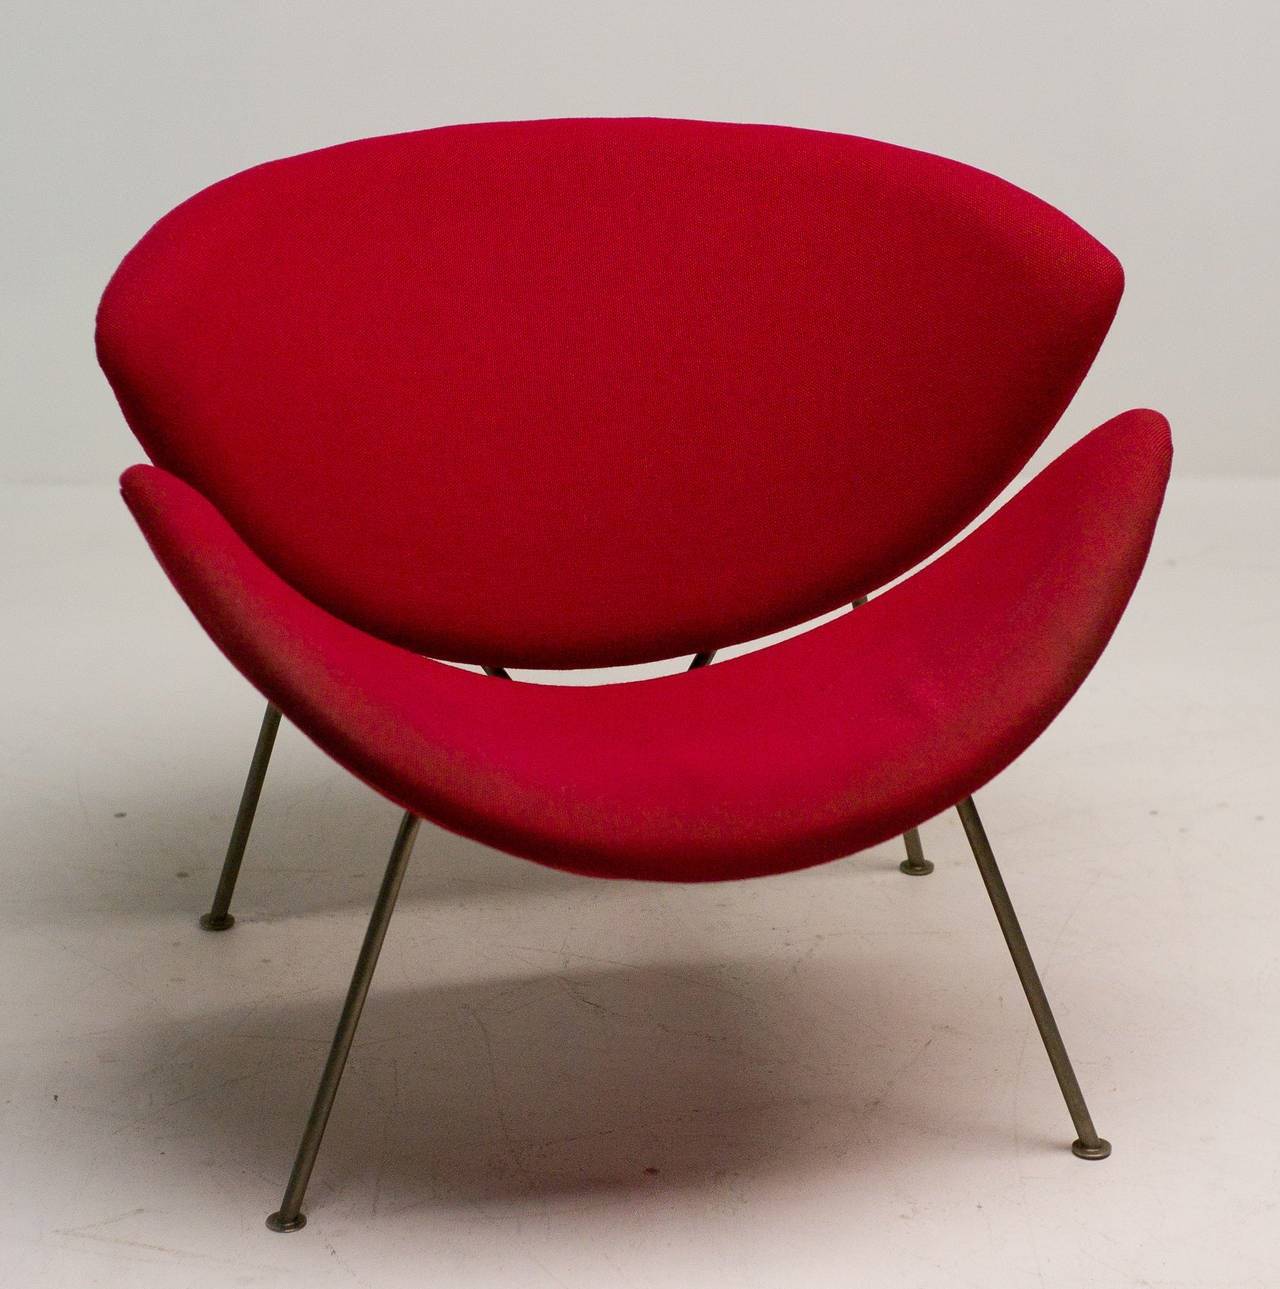 orange slice chair pride lift hand control original early by pierre paulin for